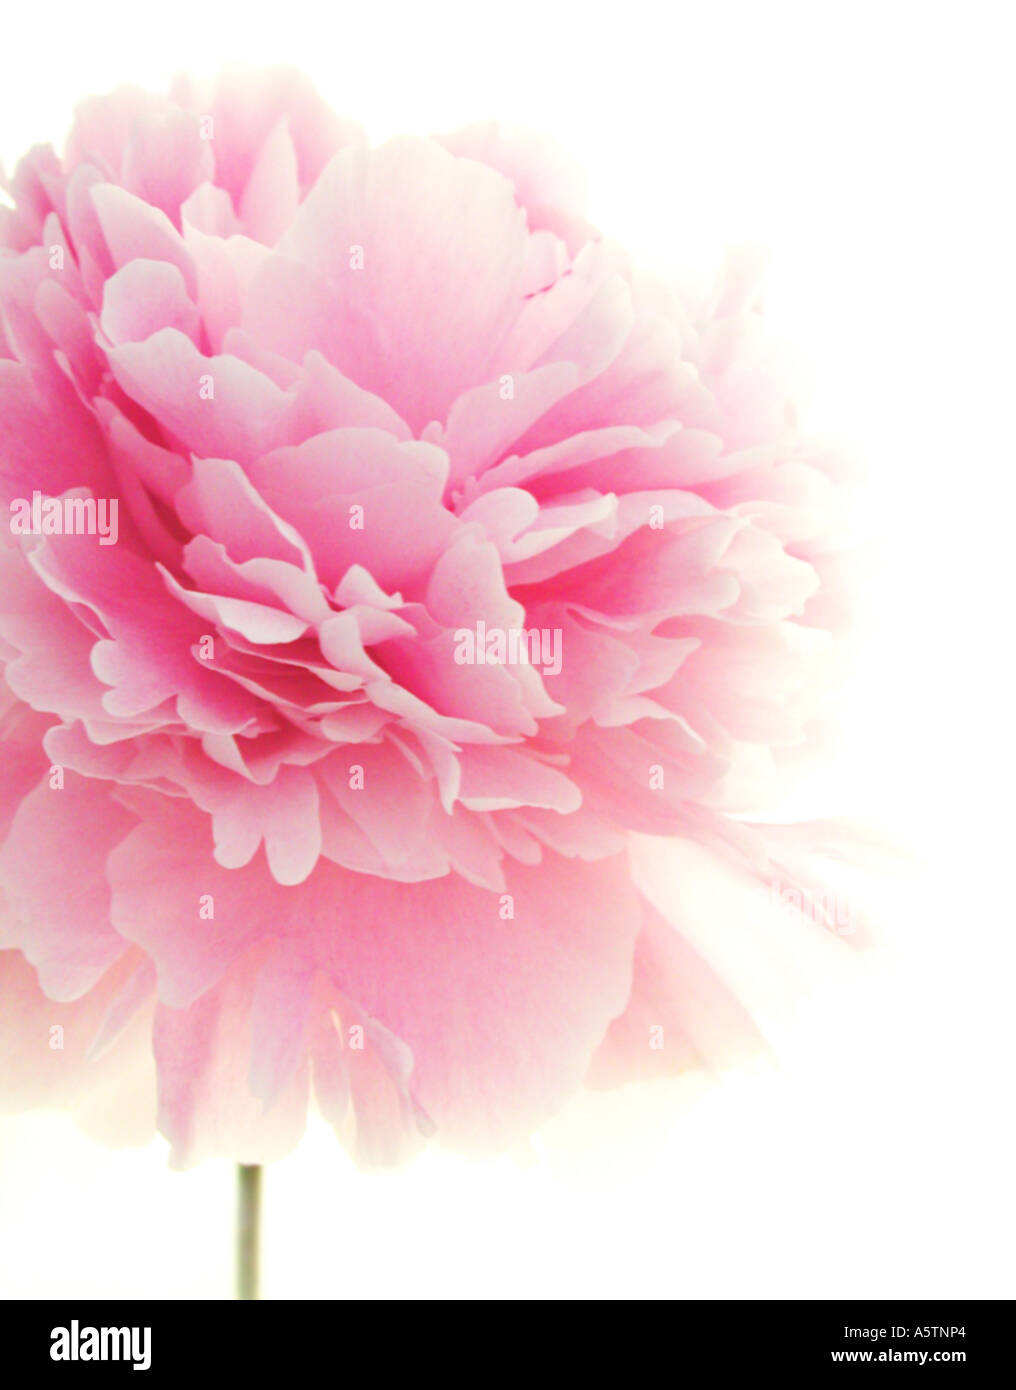 Beutiful a beutiful image of a blousy, pink peony flower stock photo